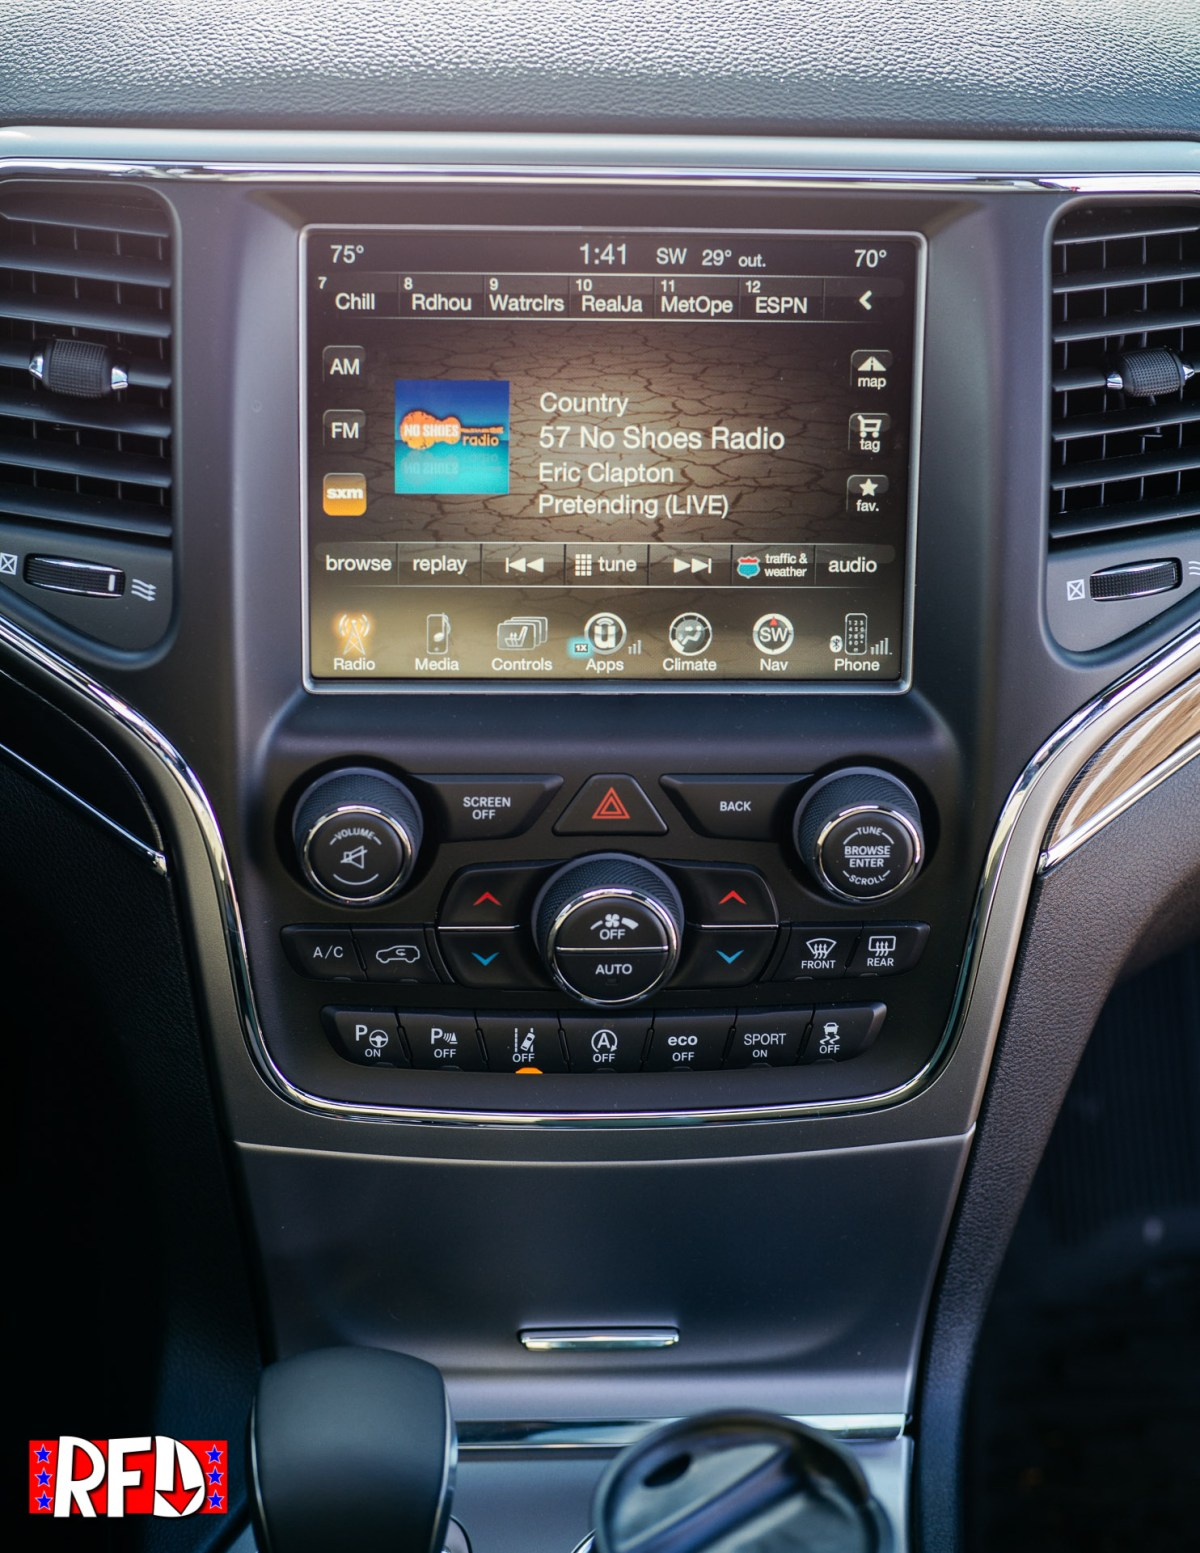 Jeep Grand Cherokee Trailhawk infotainment